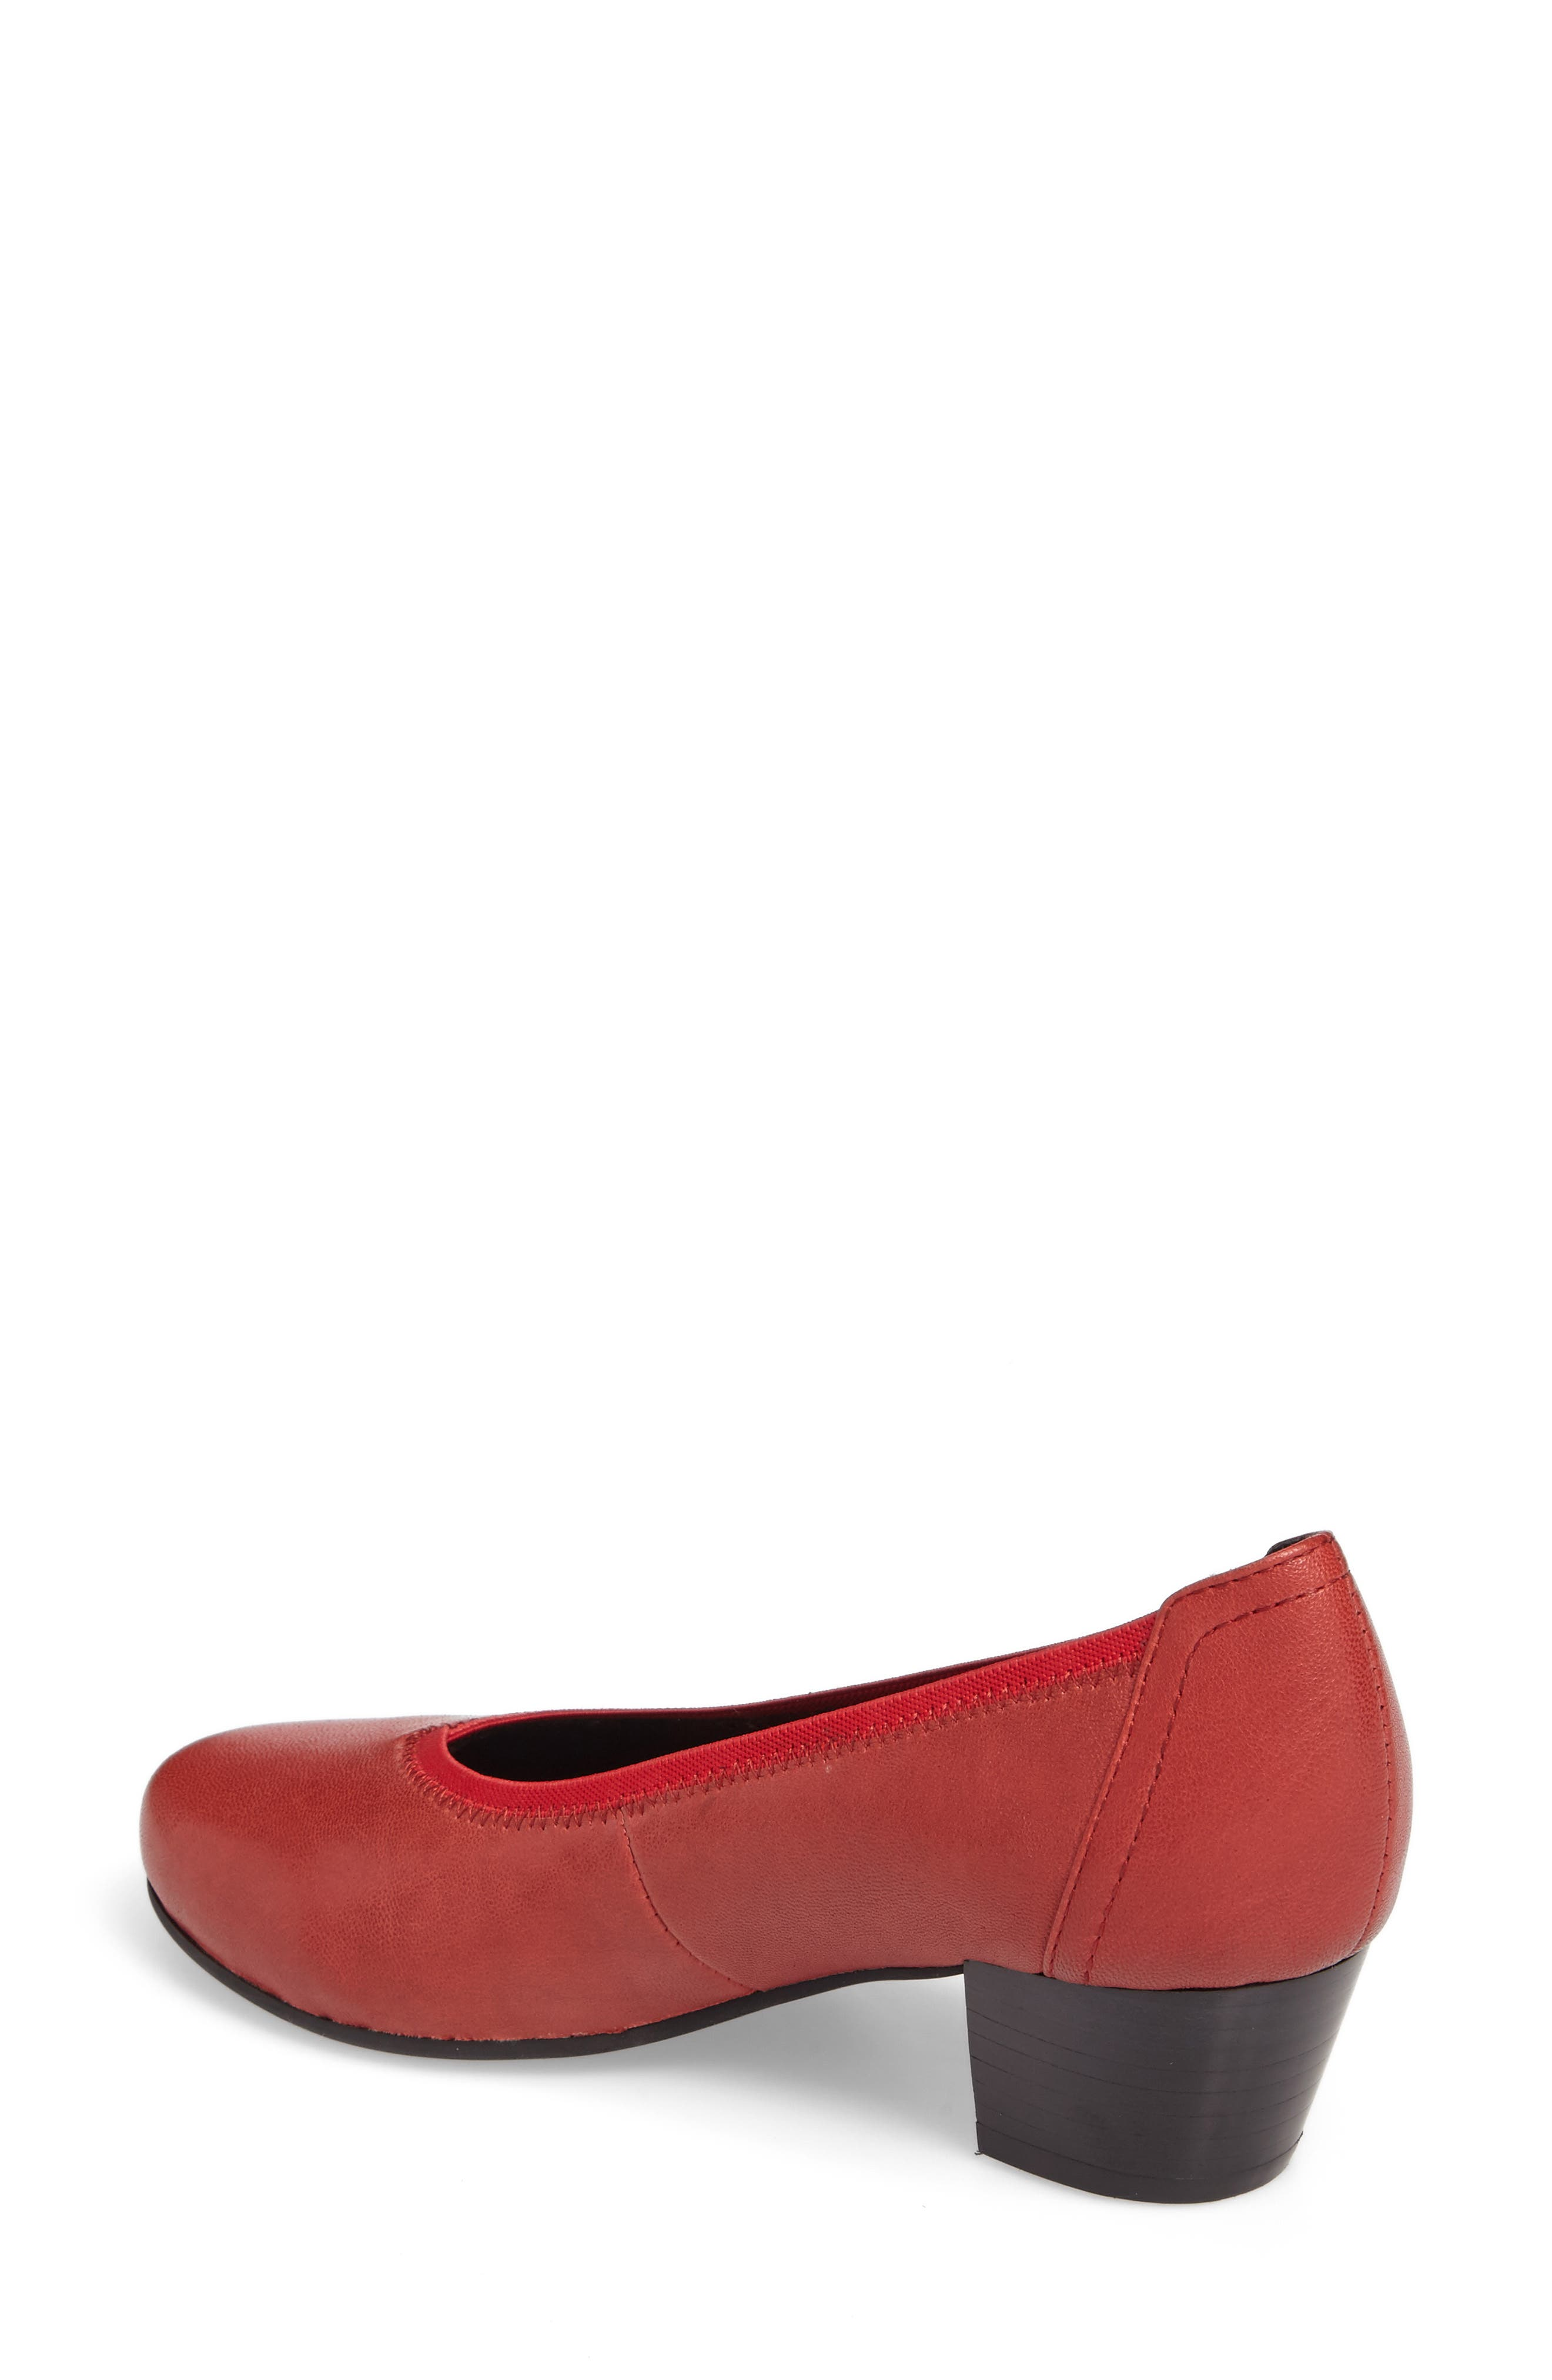 Madera Pump,                             Alternate thumbnail 2, color,                             Red Leather